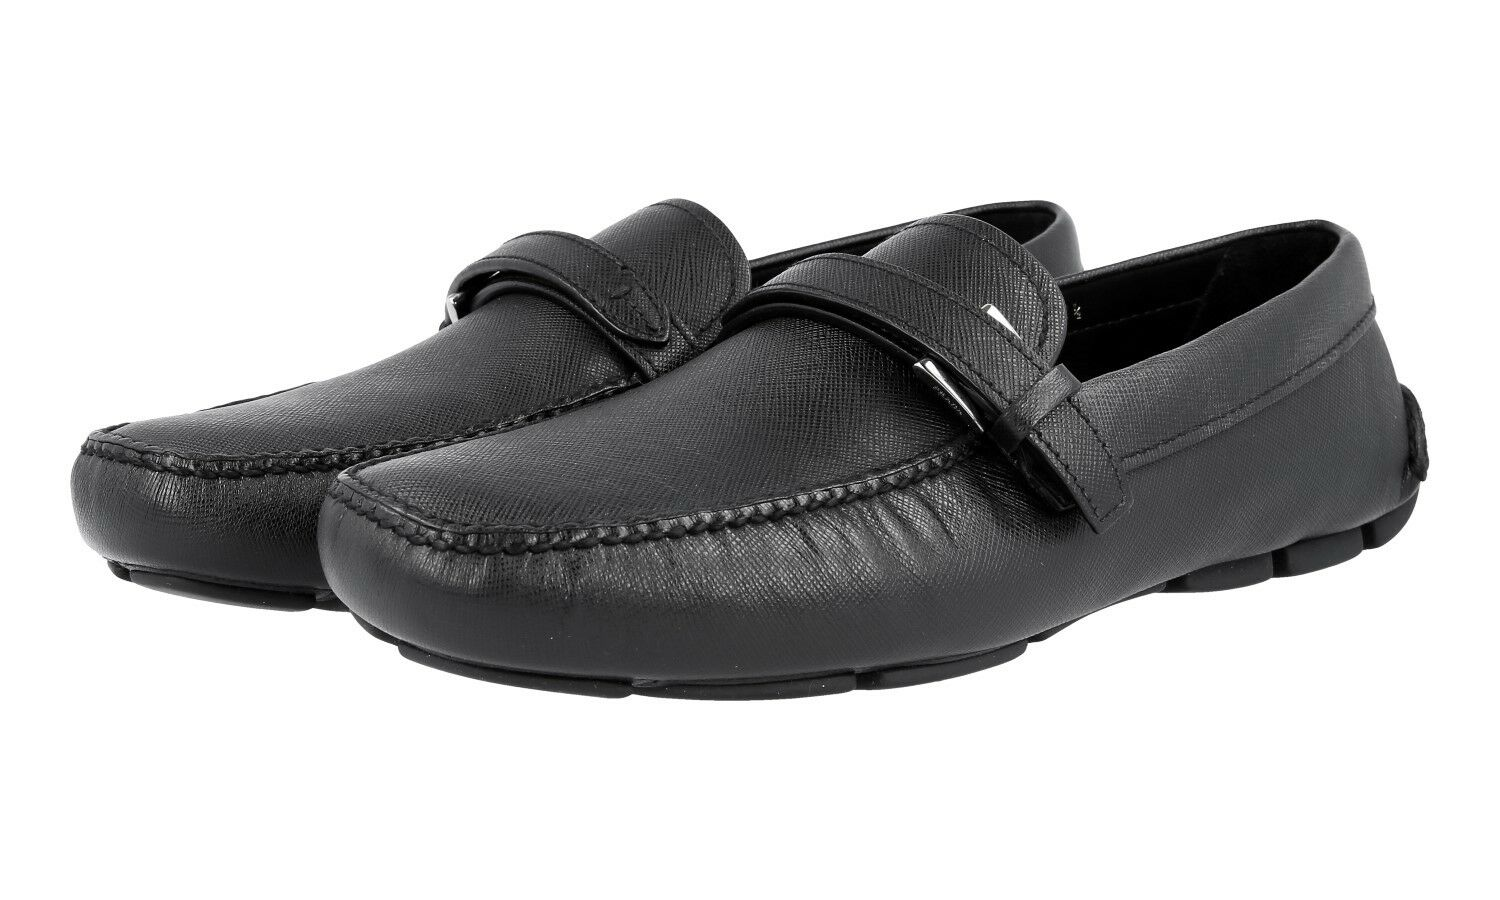 LUXUS PRADA SAFFIANO BUSINESS LOAFER SCHUHE 2DD110 black NEU NEW 9 43 43,5